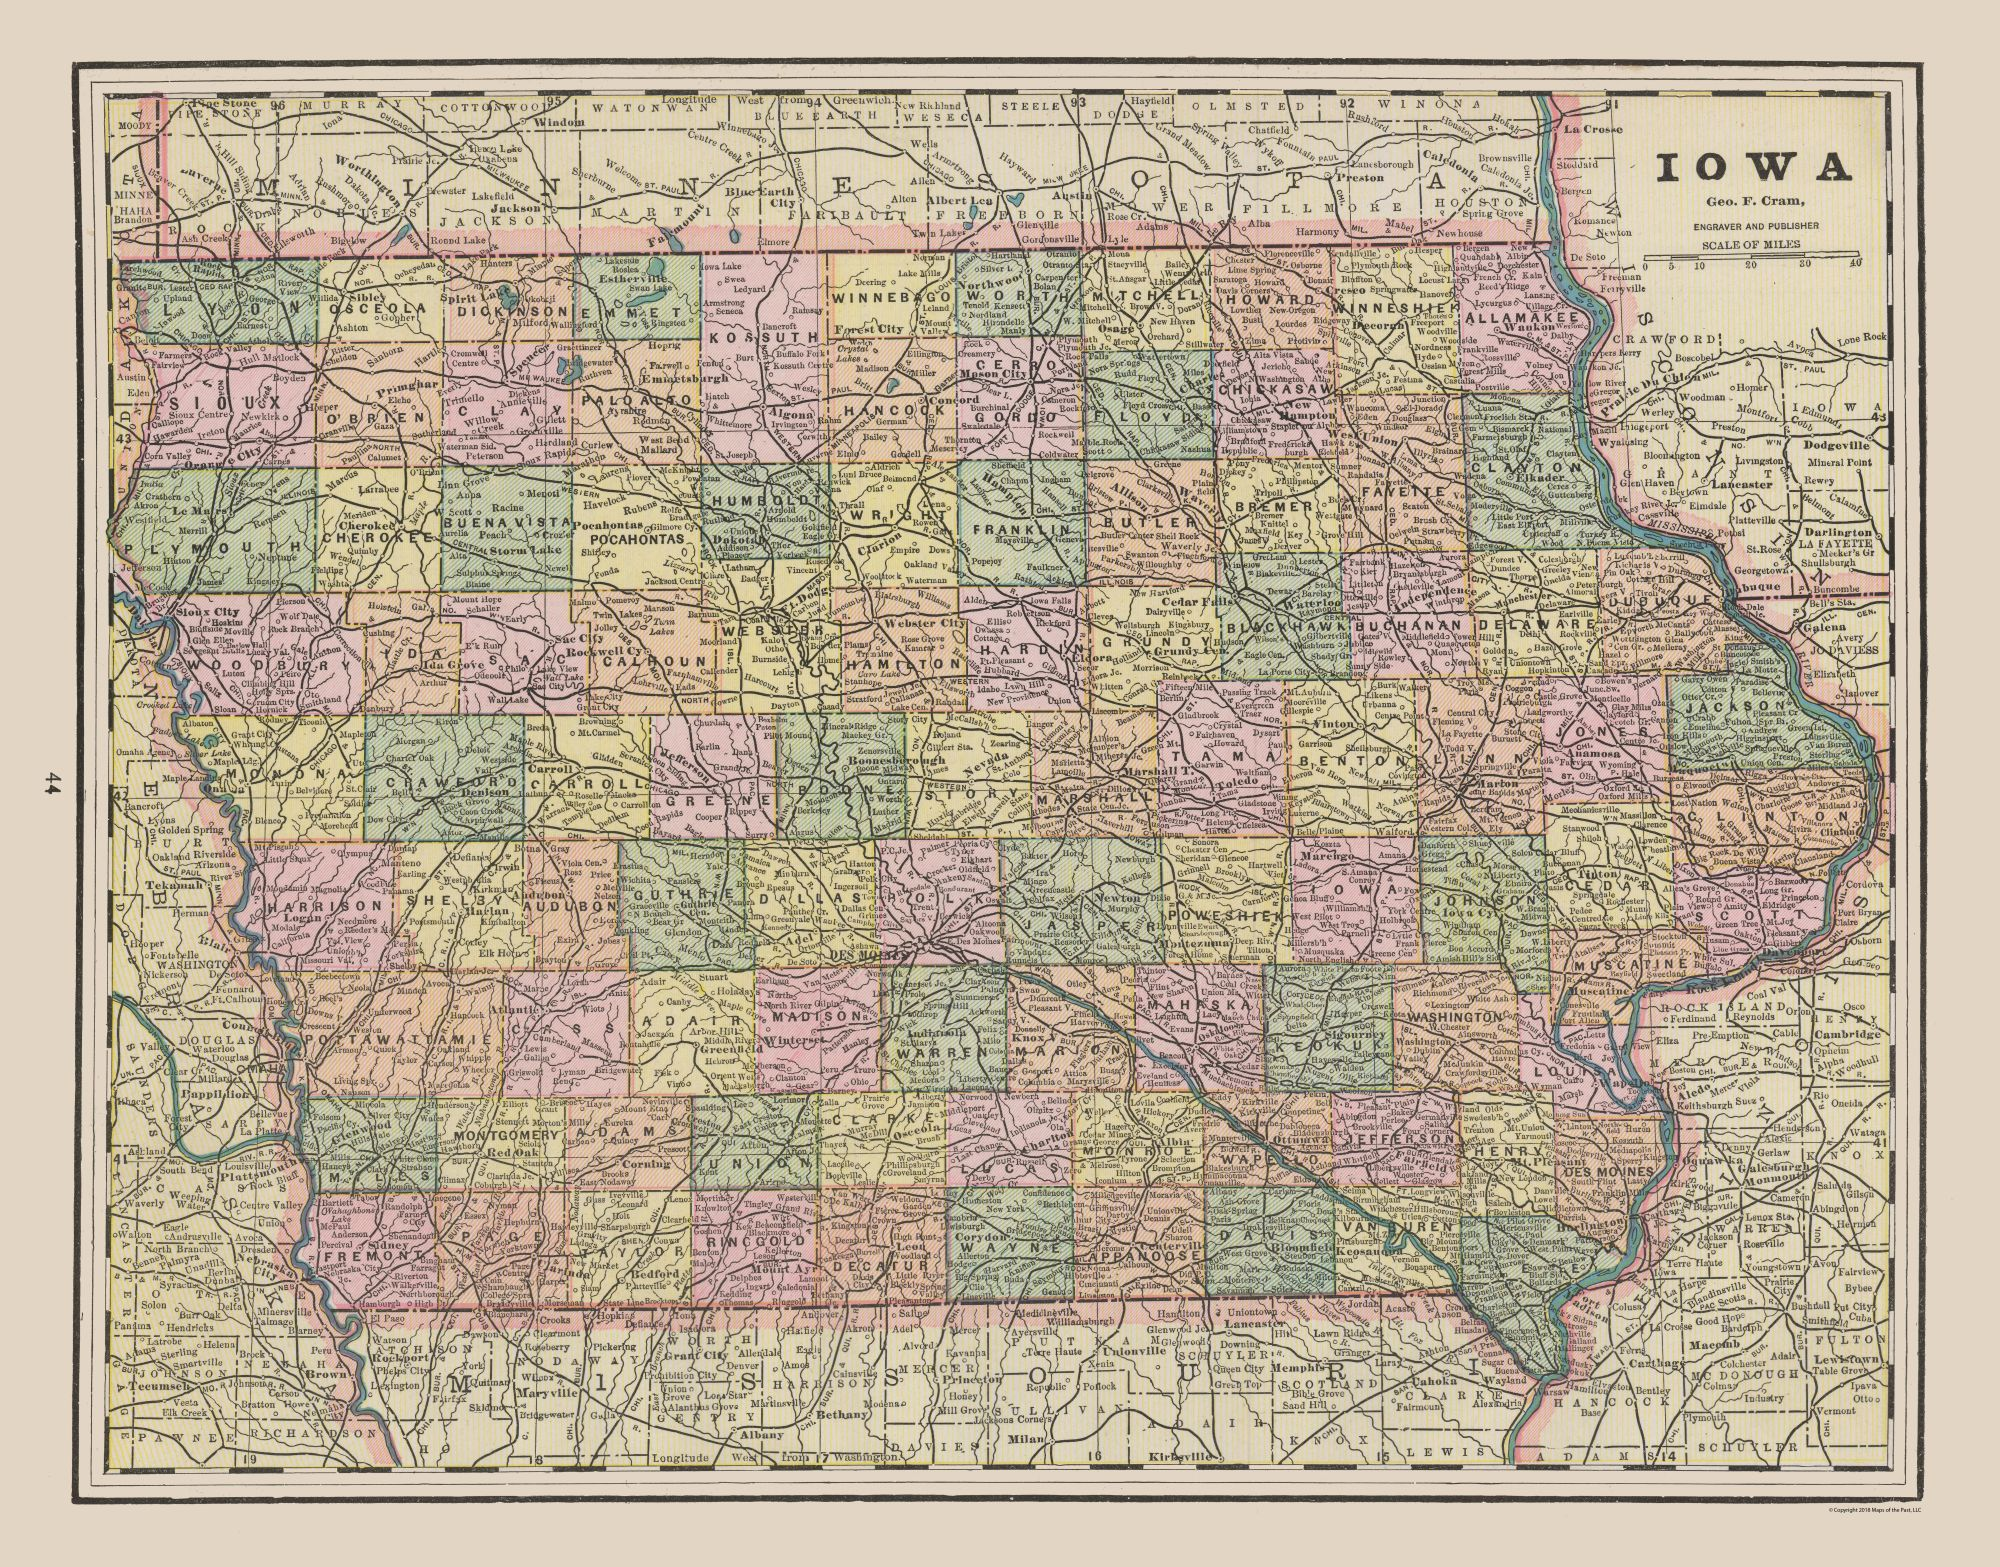 Old Iowa Map.Old State Map Iowa Cram 1892 29 35 X 23 Walmart Com